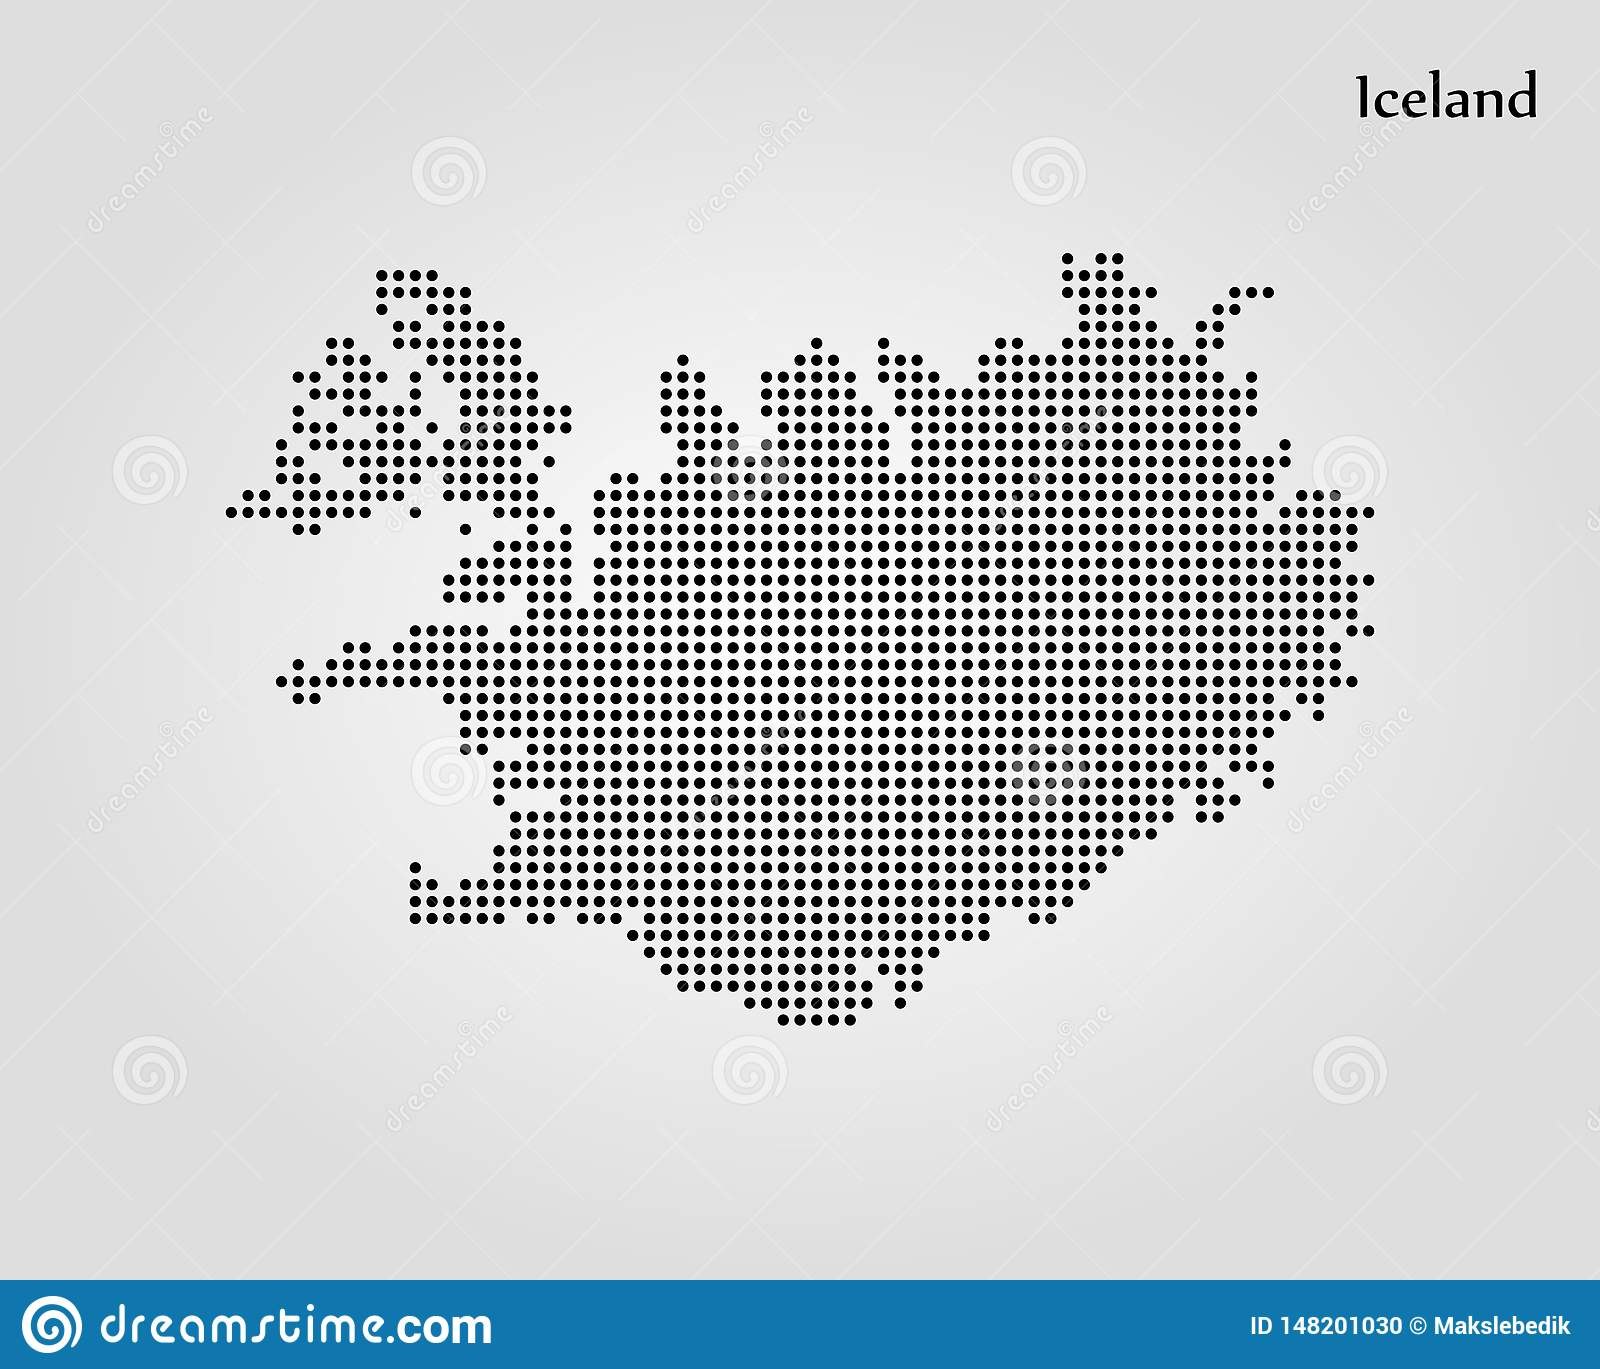 Map Of Iceland. Vector Illustration. World Map Stock ...